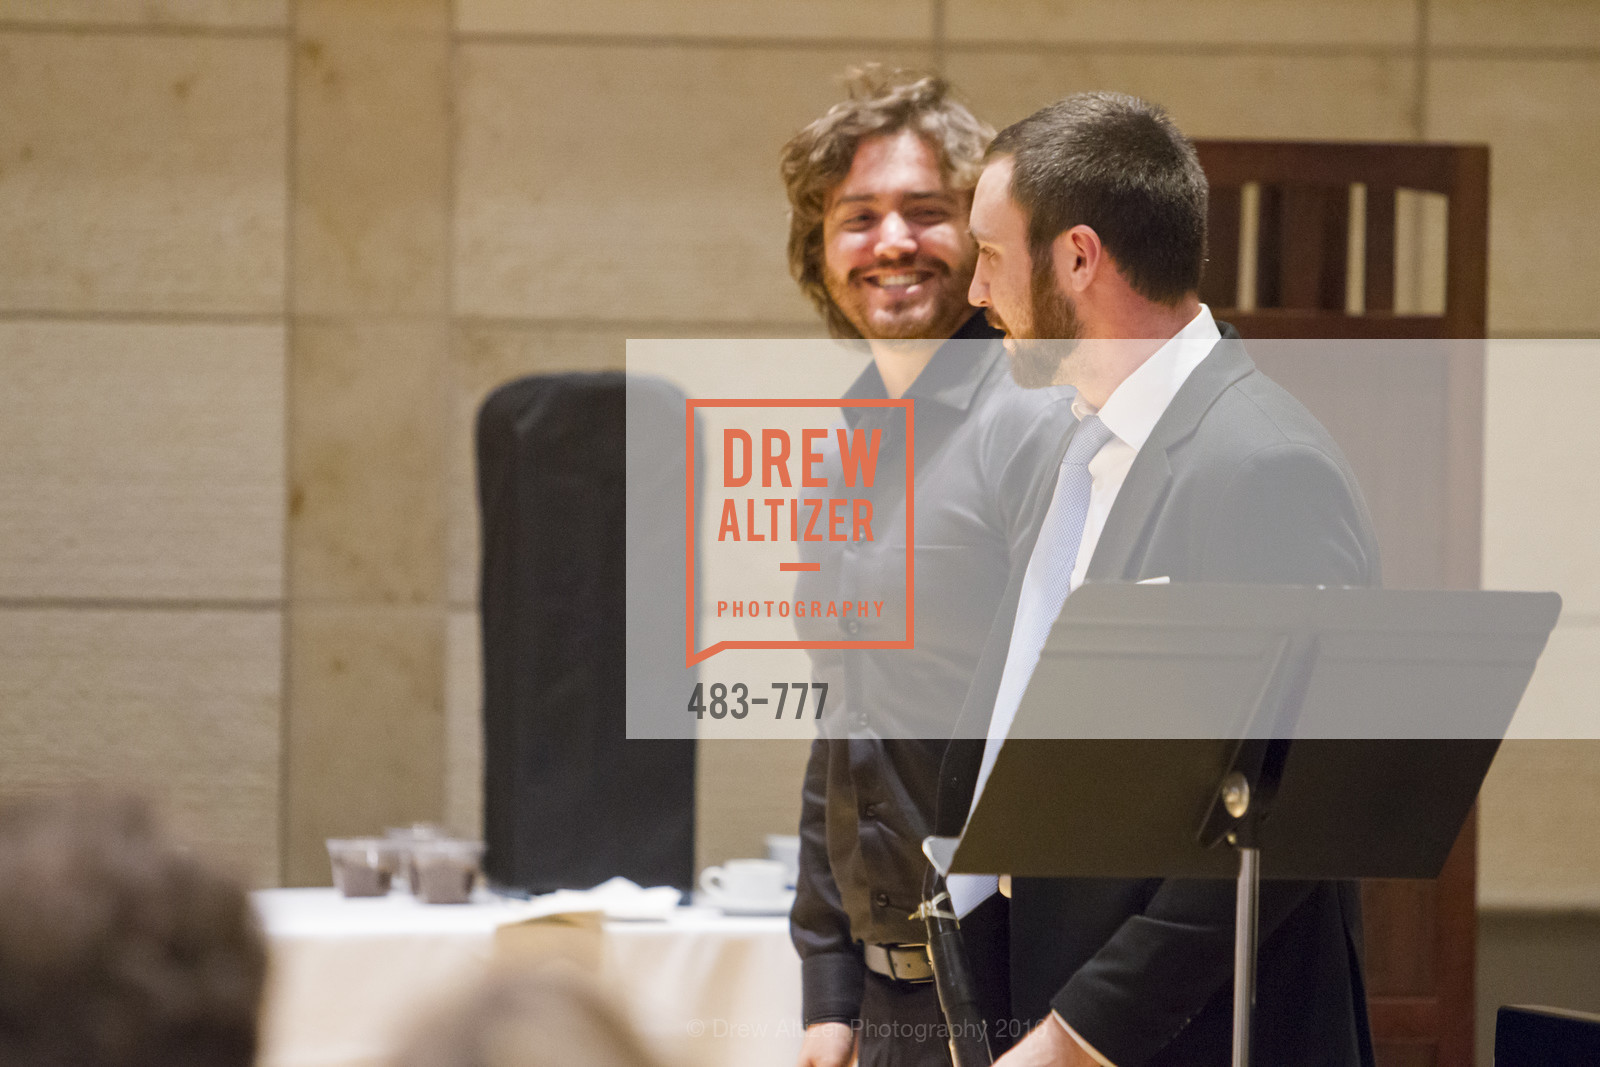 Extras, The San Francisco Conservatory of Music Fanfare Luncheon, January 29th, 2016, Photo,Drew Altizer, Drew Altizer Photography, full-service agency, private events, San Francisco photographer, photographer california